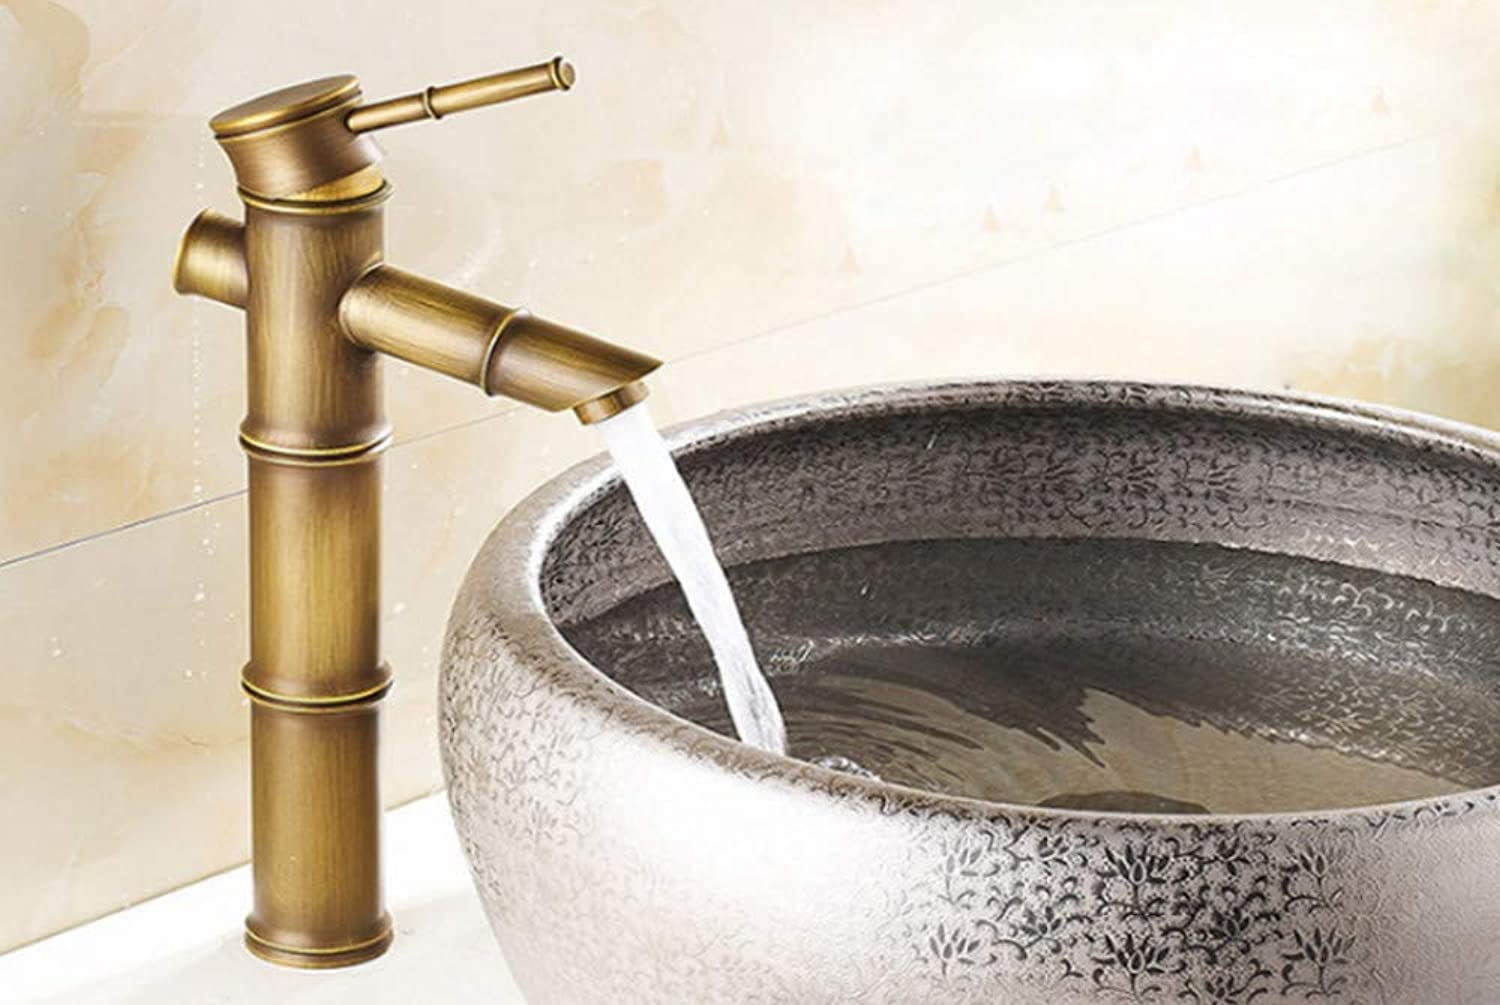 Brass Waterfall Bathroom Faucet Sink Vessel Tall Bamboo Water Tap Mixer Hot and